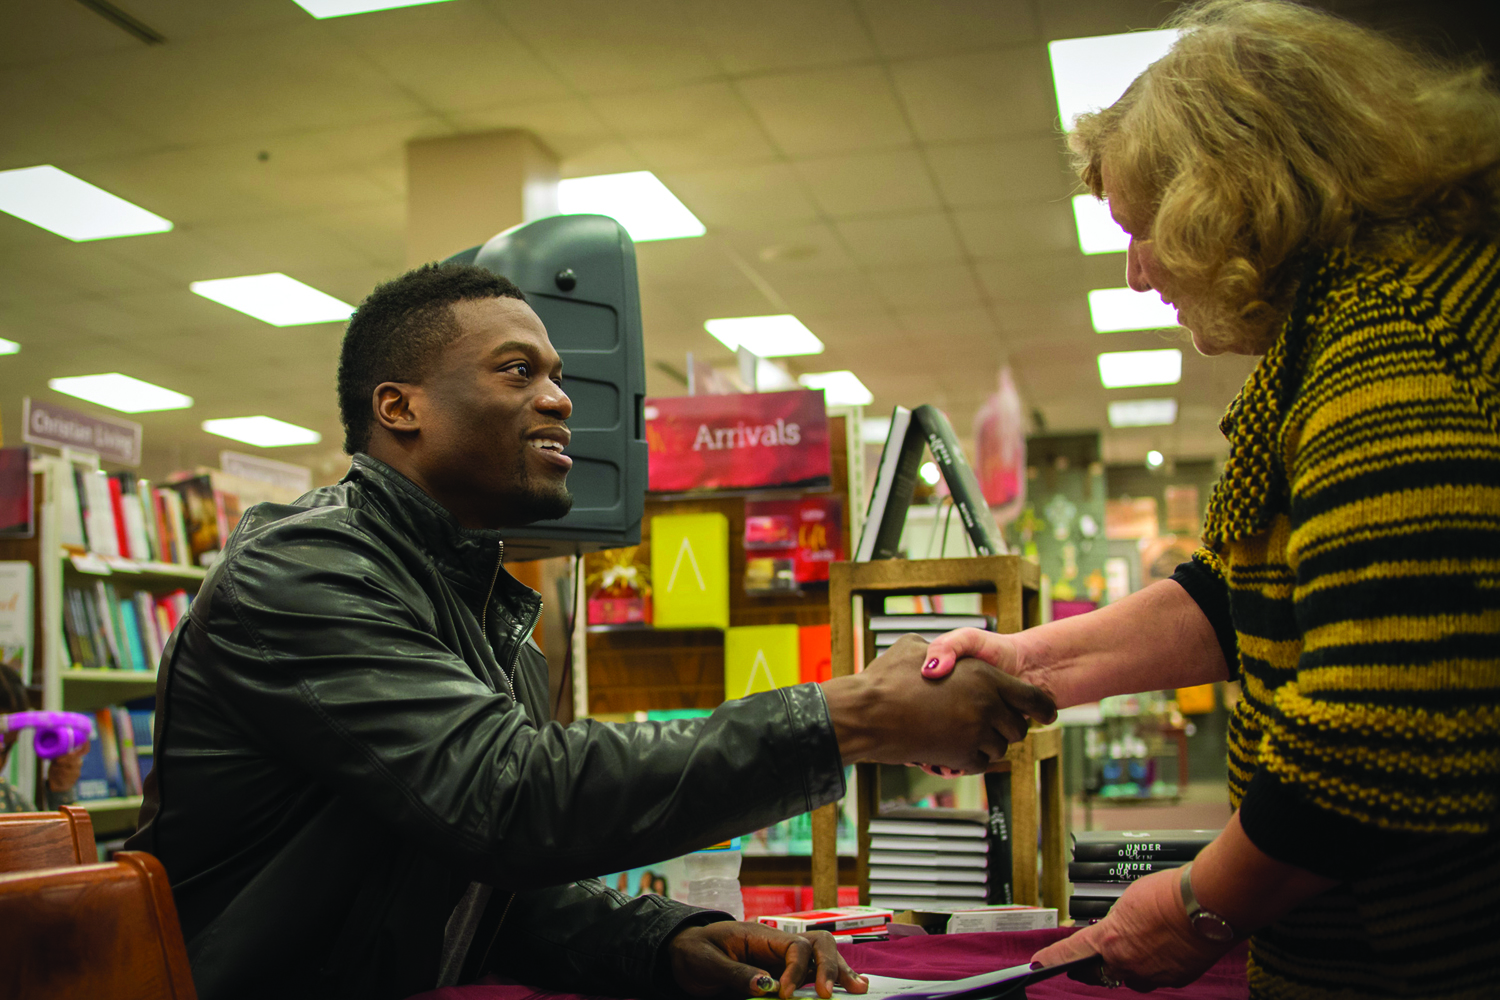 """New Orleans Saints tight end Ben Watson shakes hands with a fan before signing a copy of his new book """"Under Our Skin: Getting Real About Race -- And Getting Free from the Fears and Frustrations that Divide Us"""" that calls for racial reconciliation in Christ. Photo by Marilyn Stewart"""